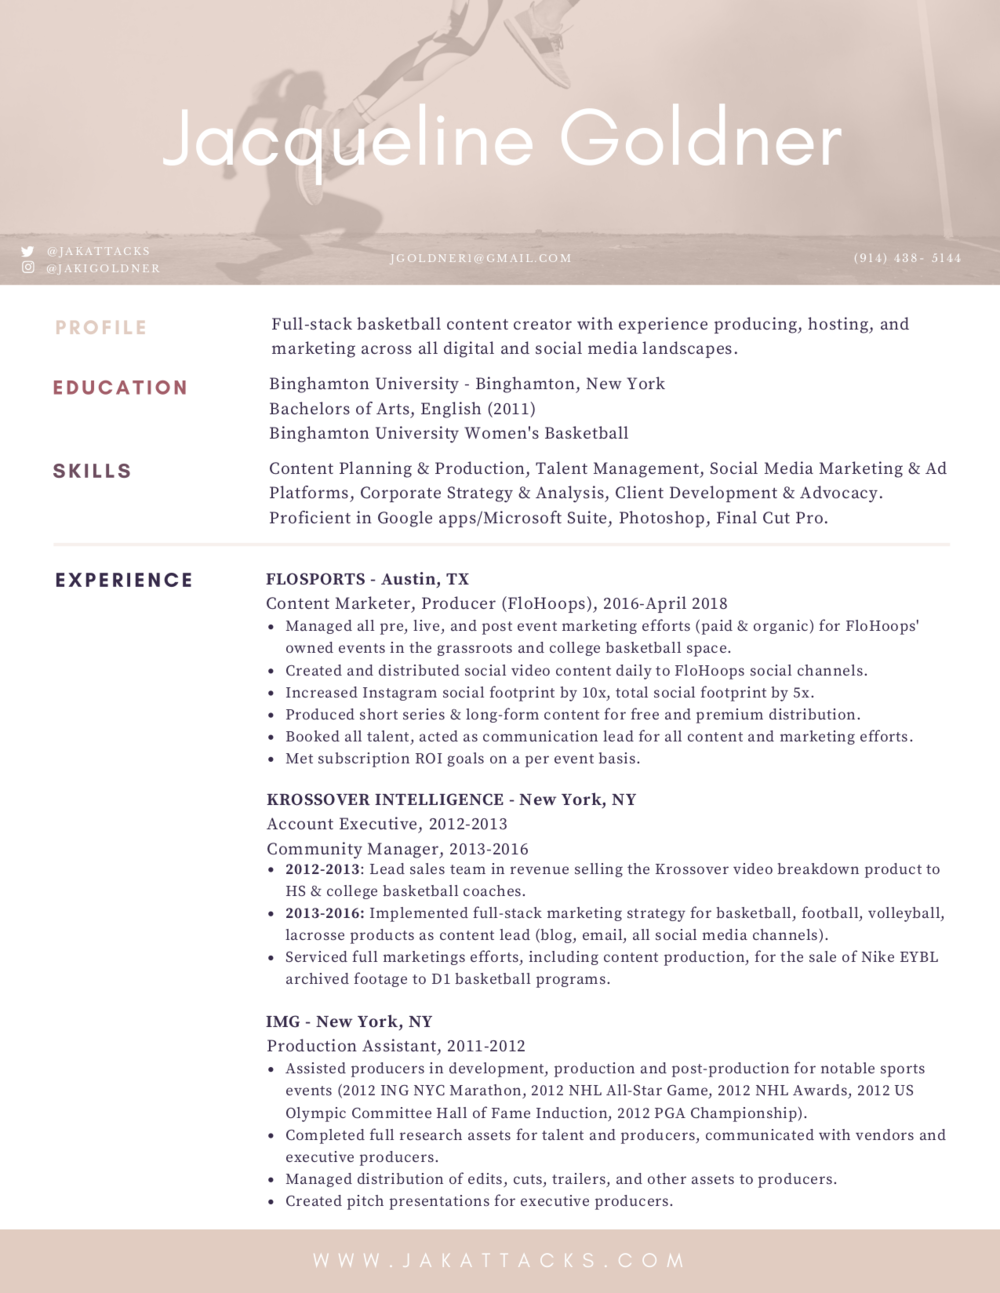 Jacqueline Goldner-ADIDAS-Res.png